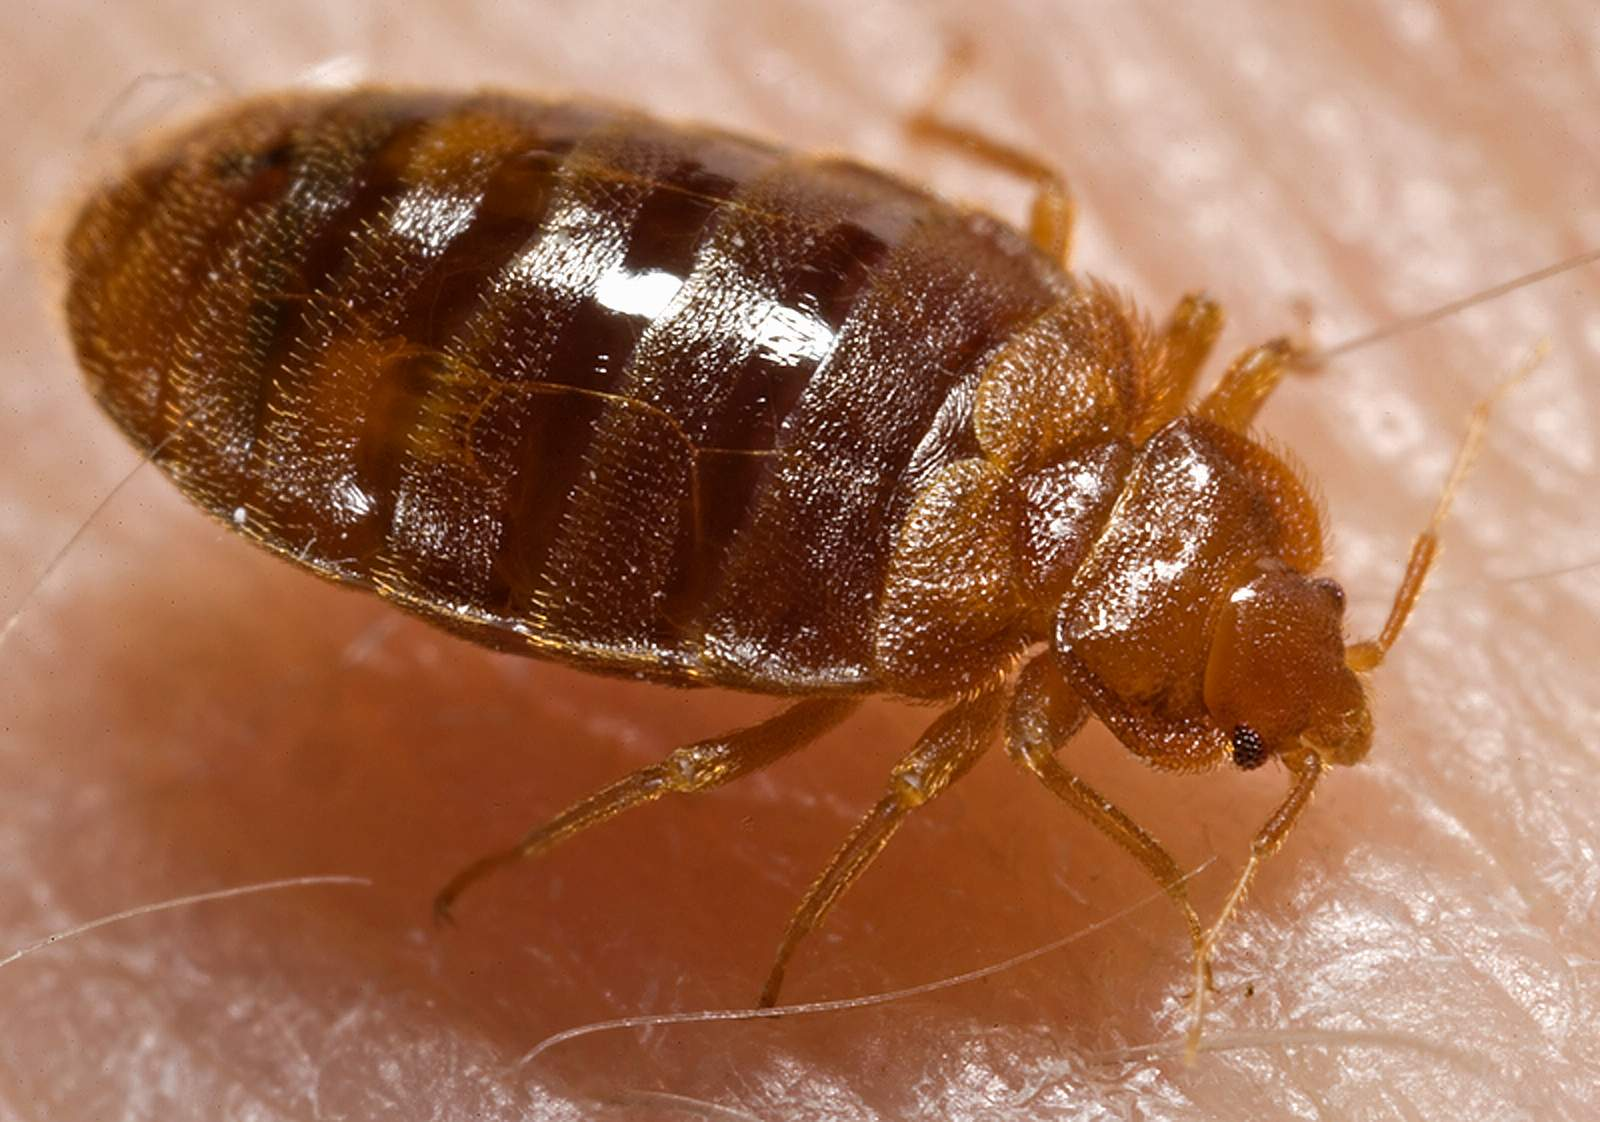 Disclosing bed bug infestation to potential tenants can save landlords money